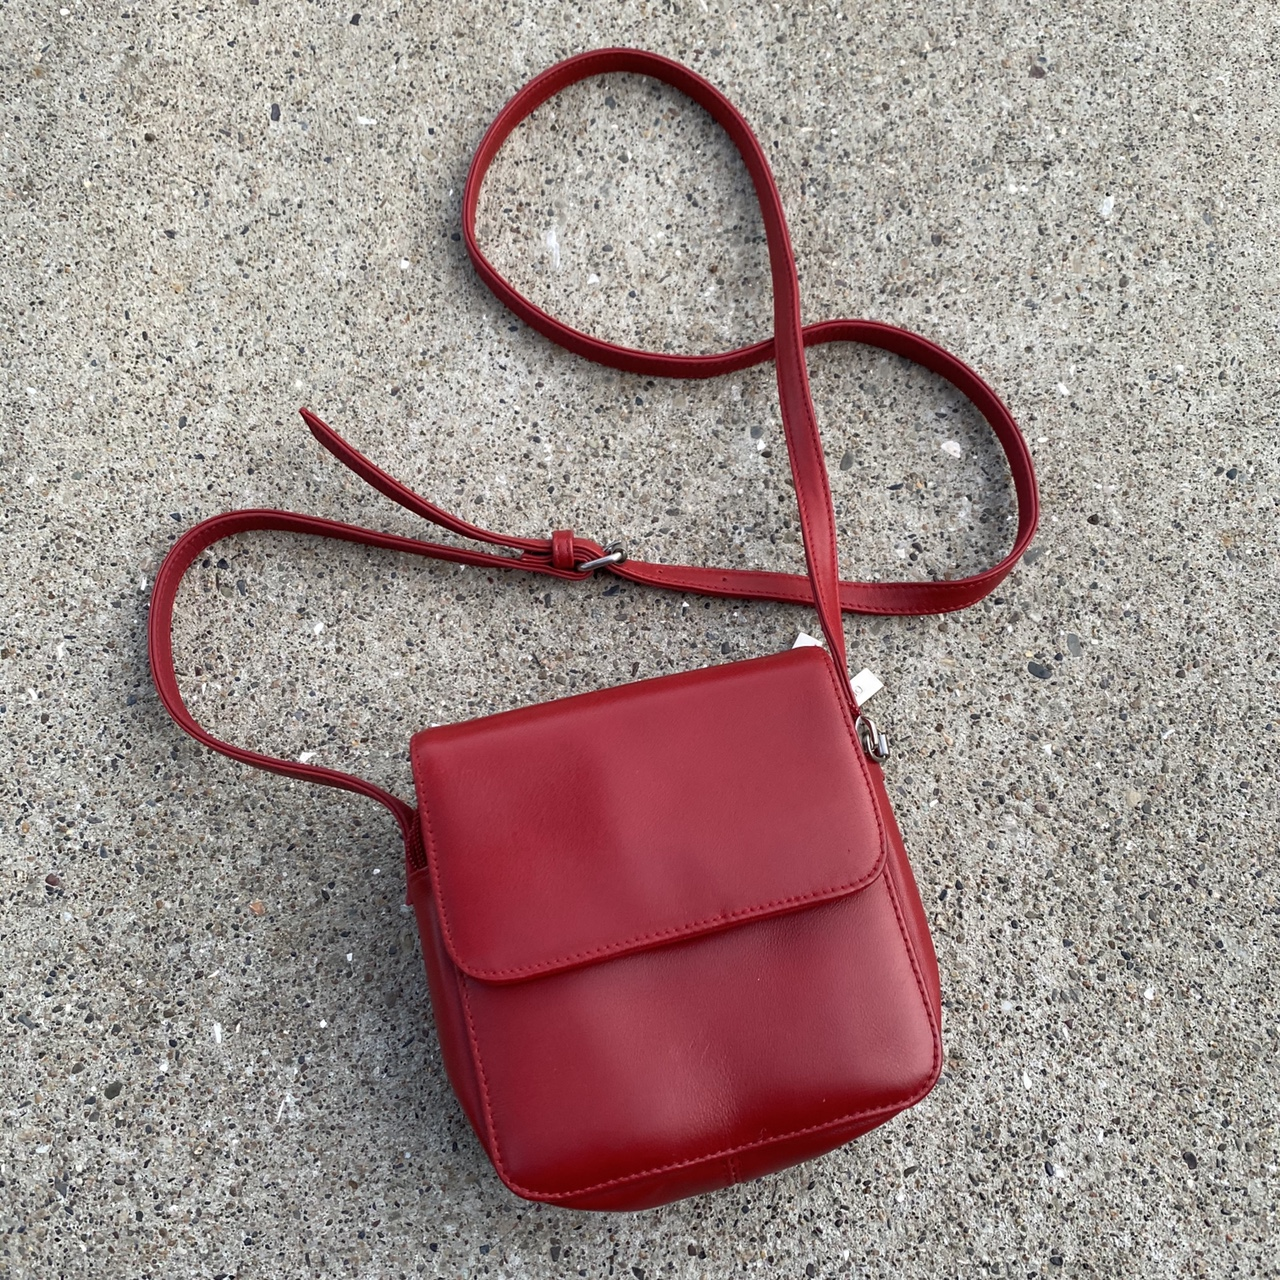 Product Image 1 - Red Hobo International Leather Purse